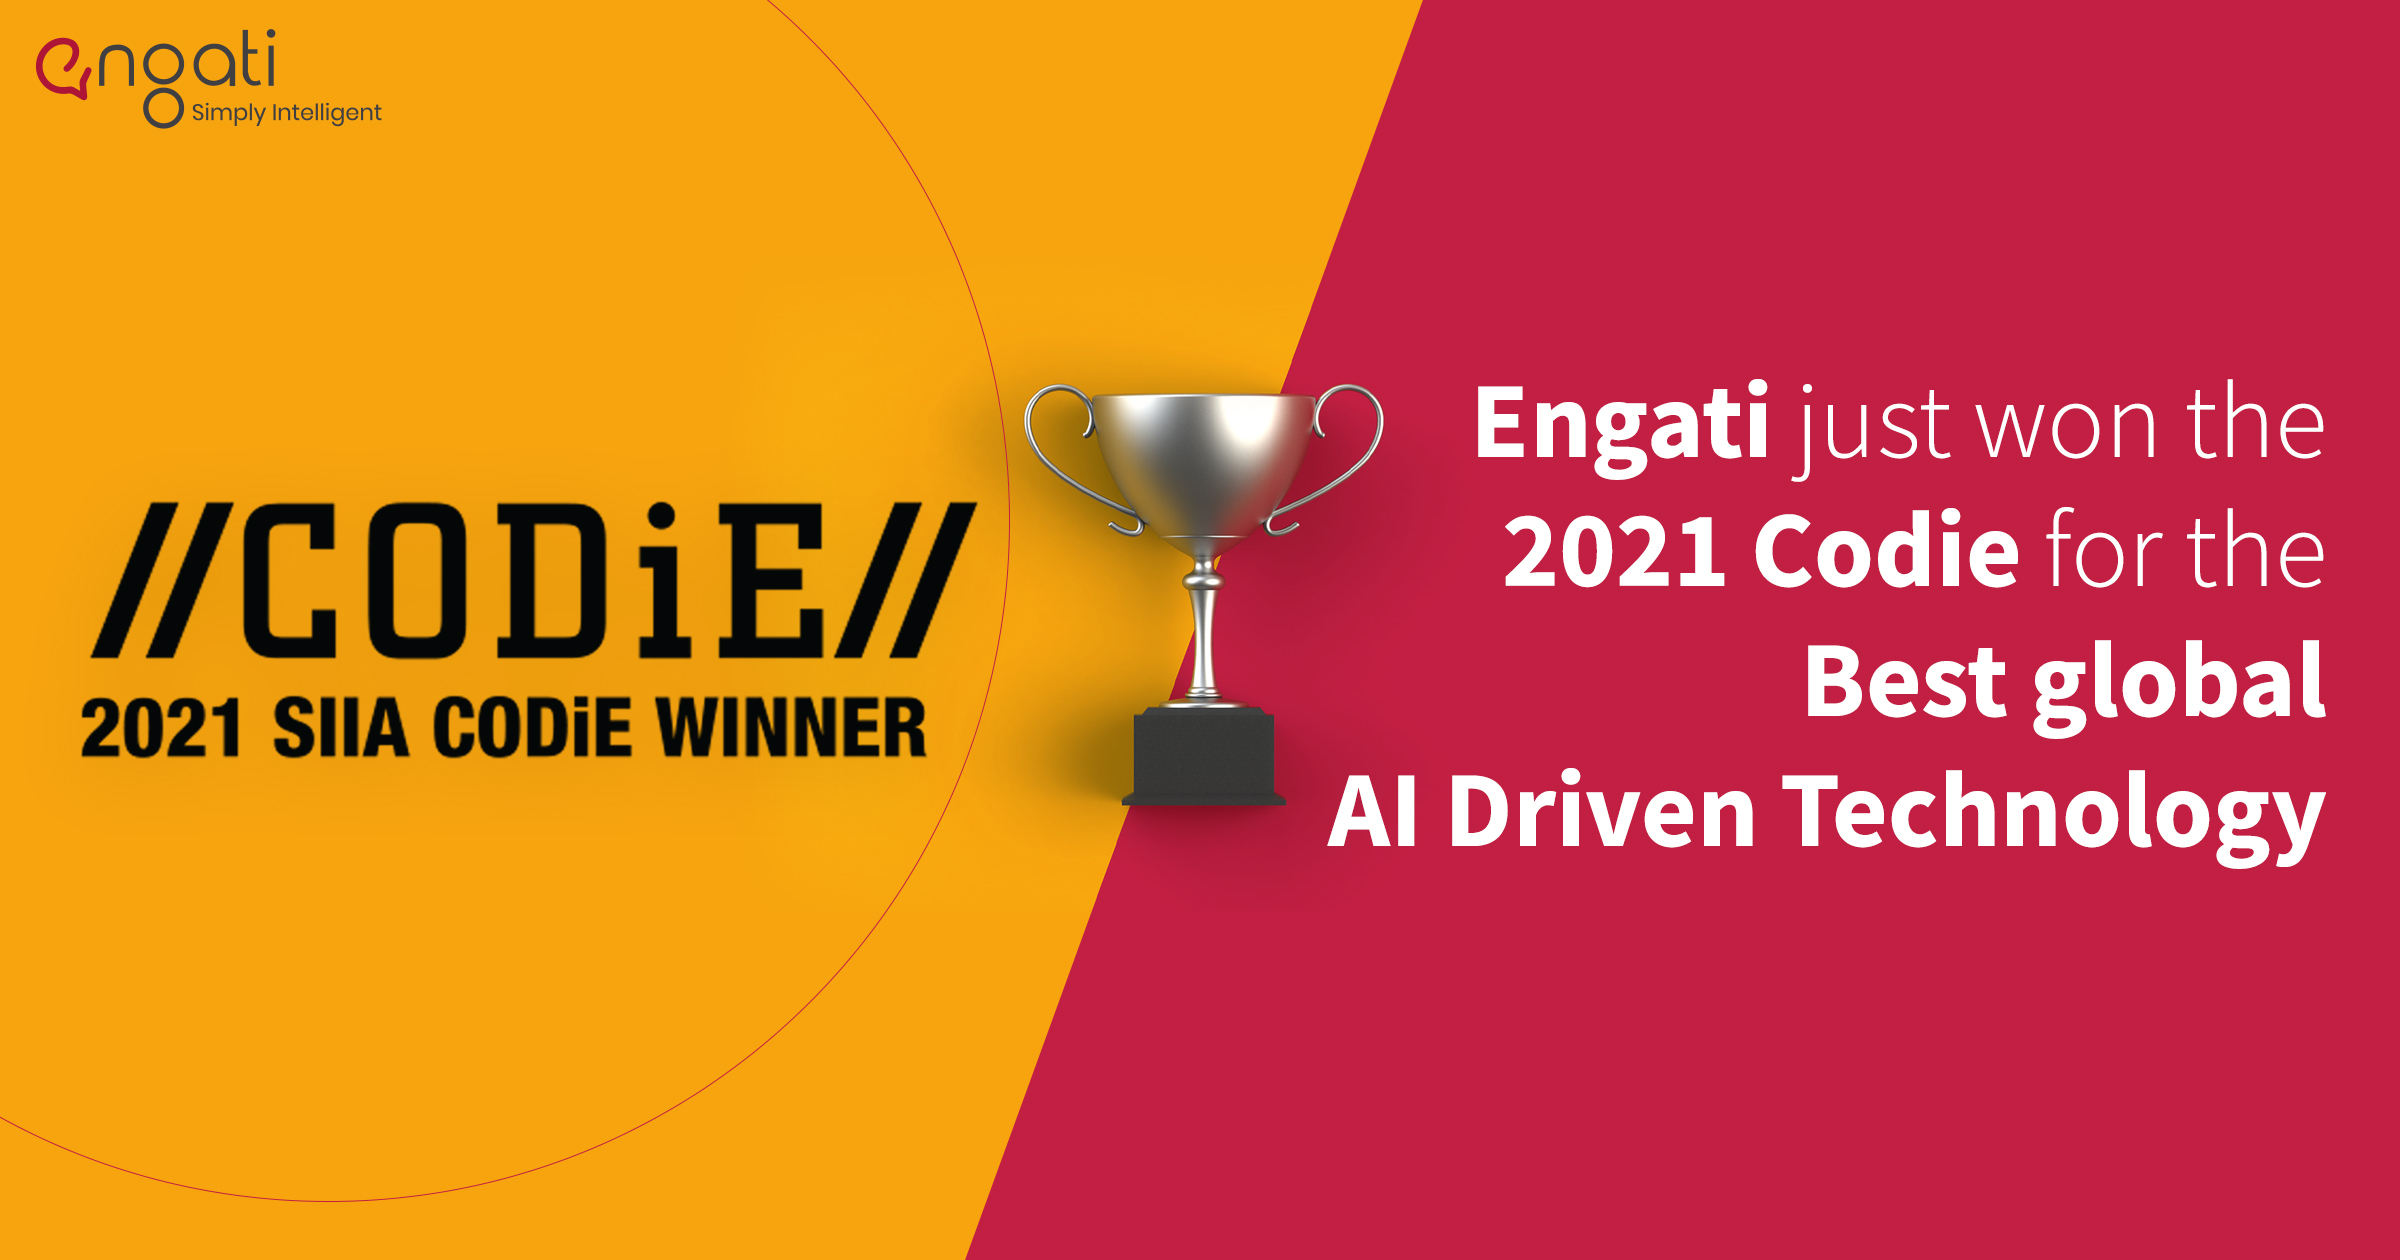 Breaking news: SIIA announces Engati as the winner of the 2021 CODiE Awards